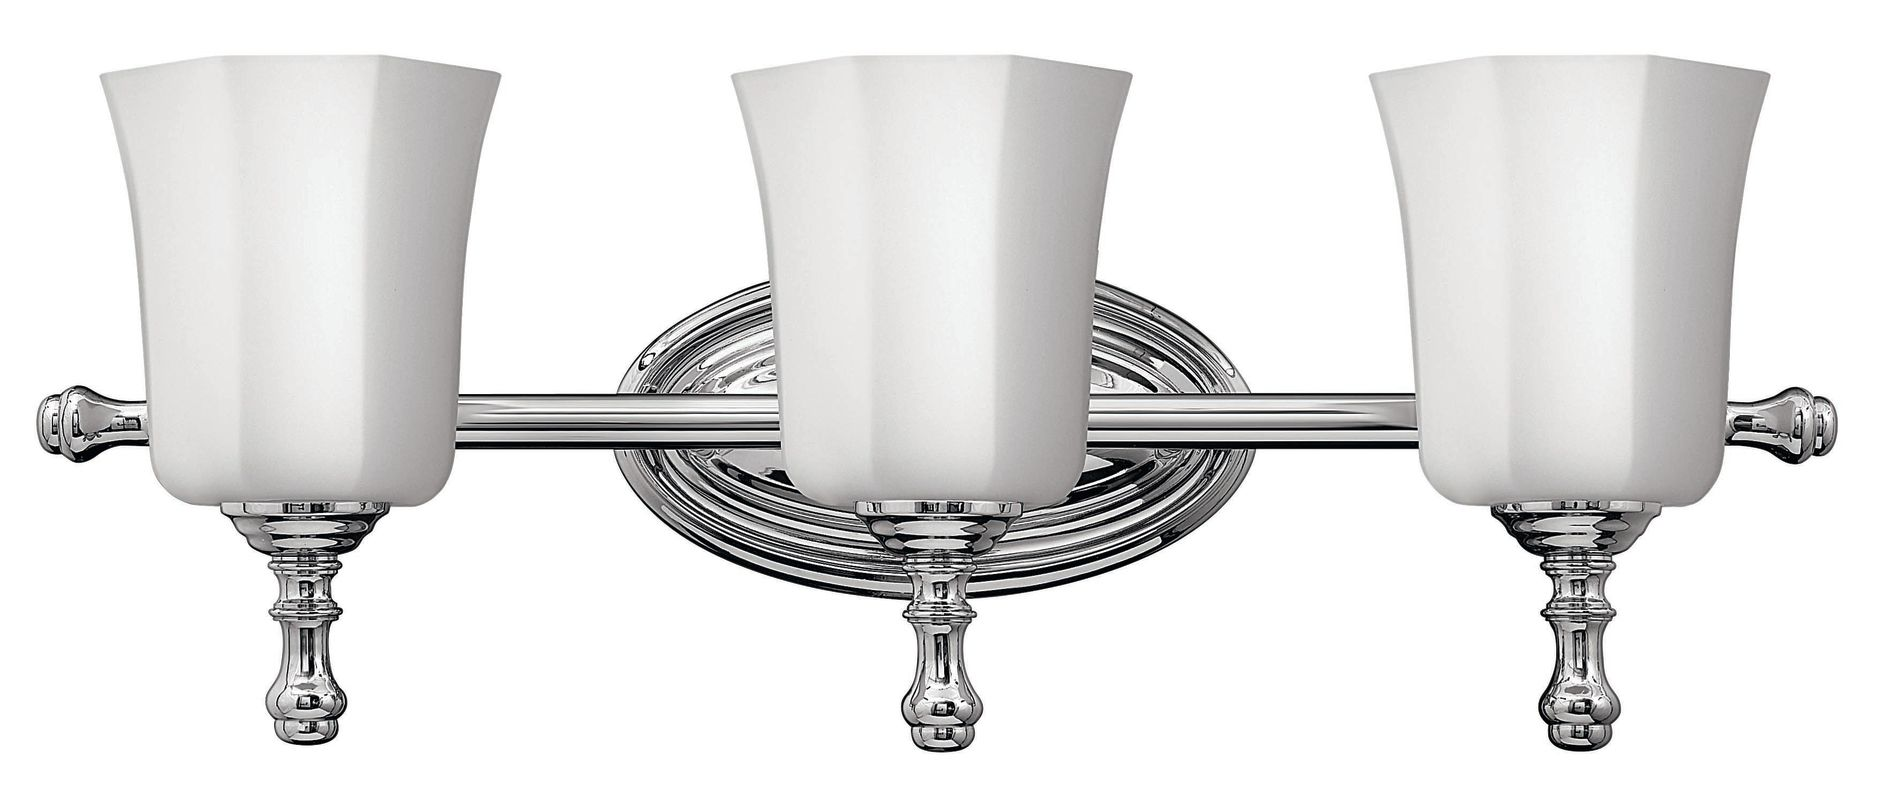 Hinkley lighting 5013cm chrome 3 light 24 width bathroom for Hinkley bathroom vanity lighting